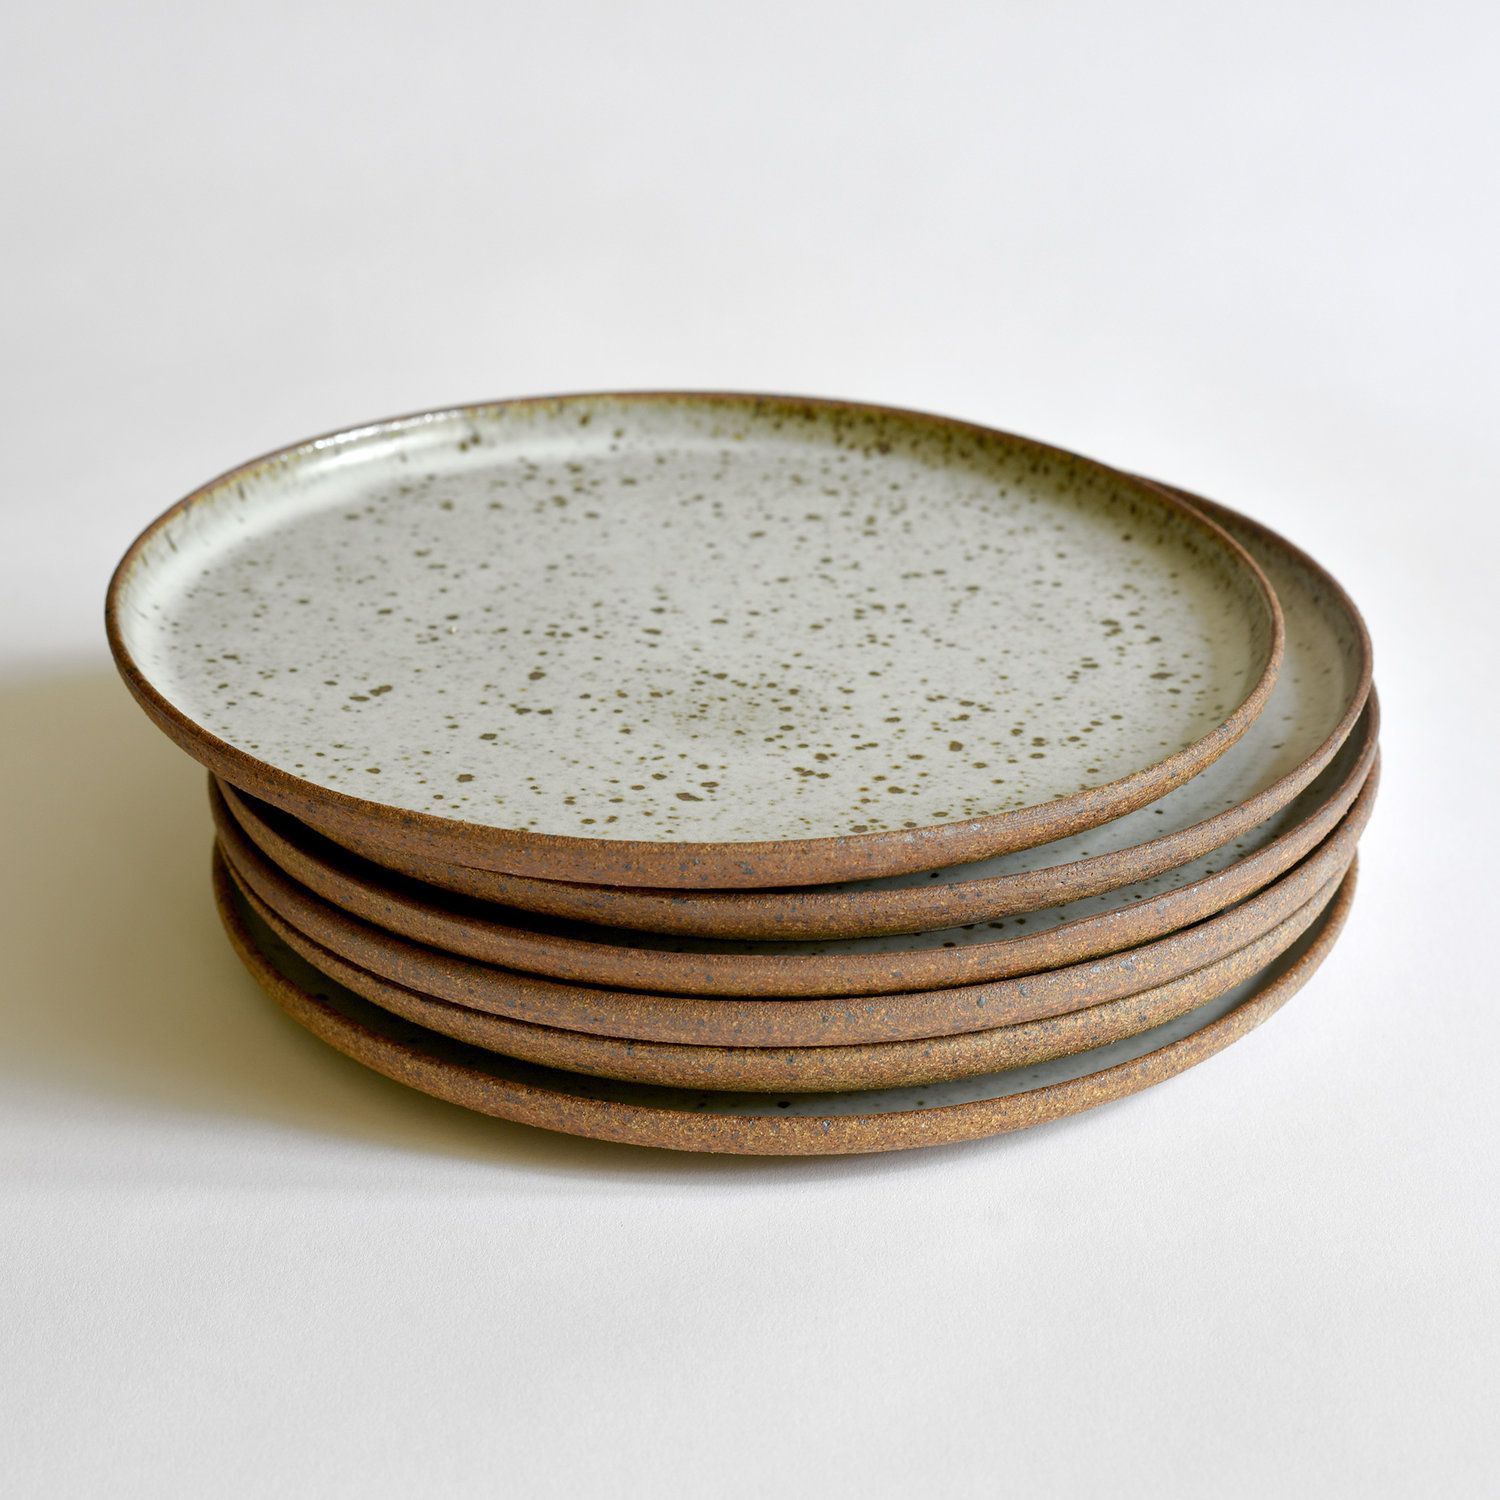 Dinner Plate Pottery Dishes Pottery Plates Rustic Ceramics